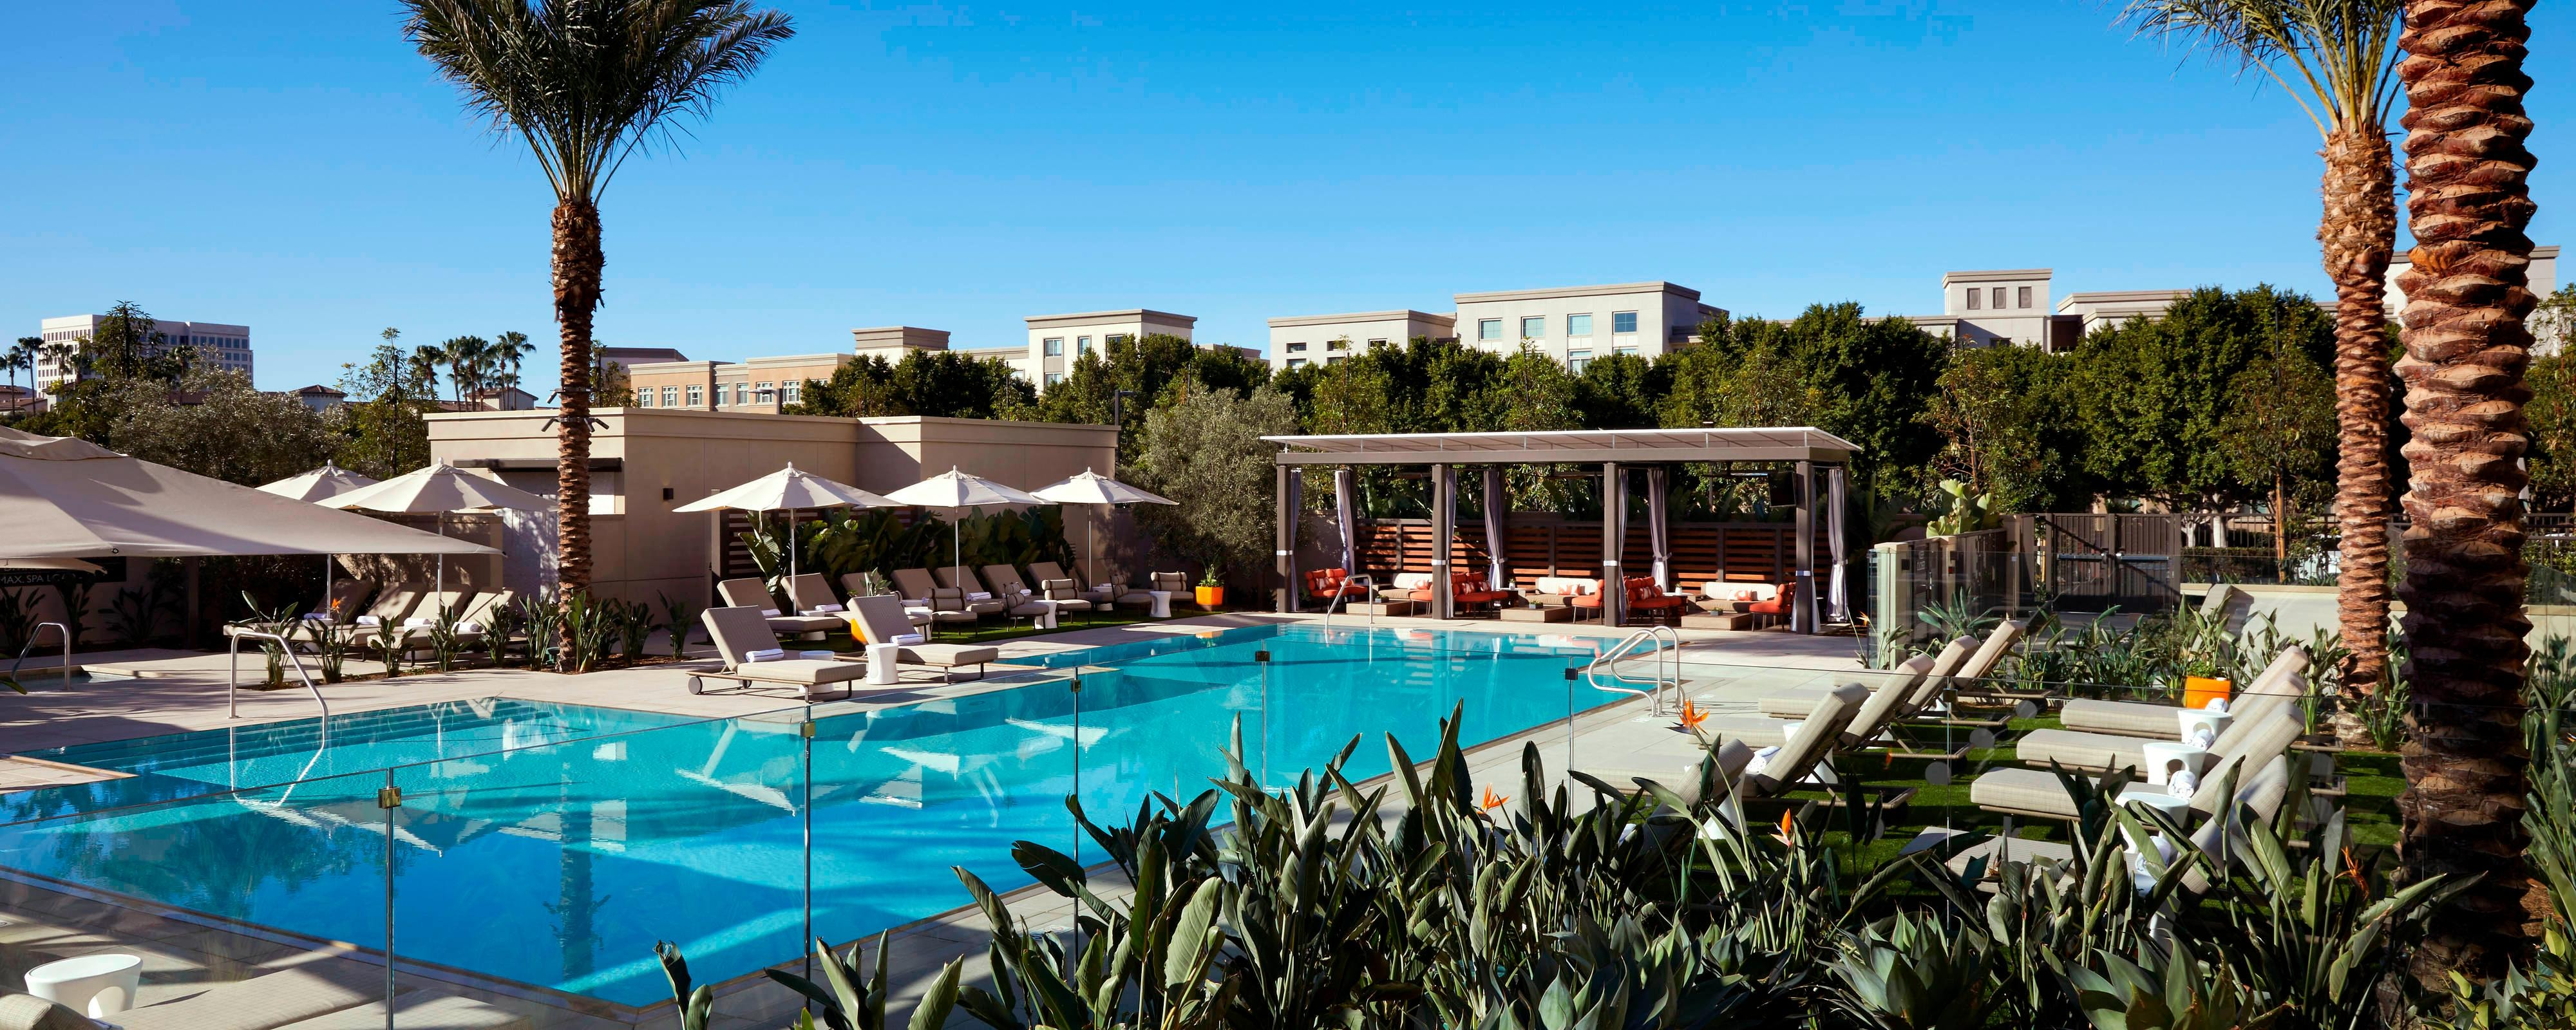 Irvine hotel with pool gym marriott irvine spectrum - Menzies hotel irvine swimming pool ...